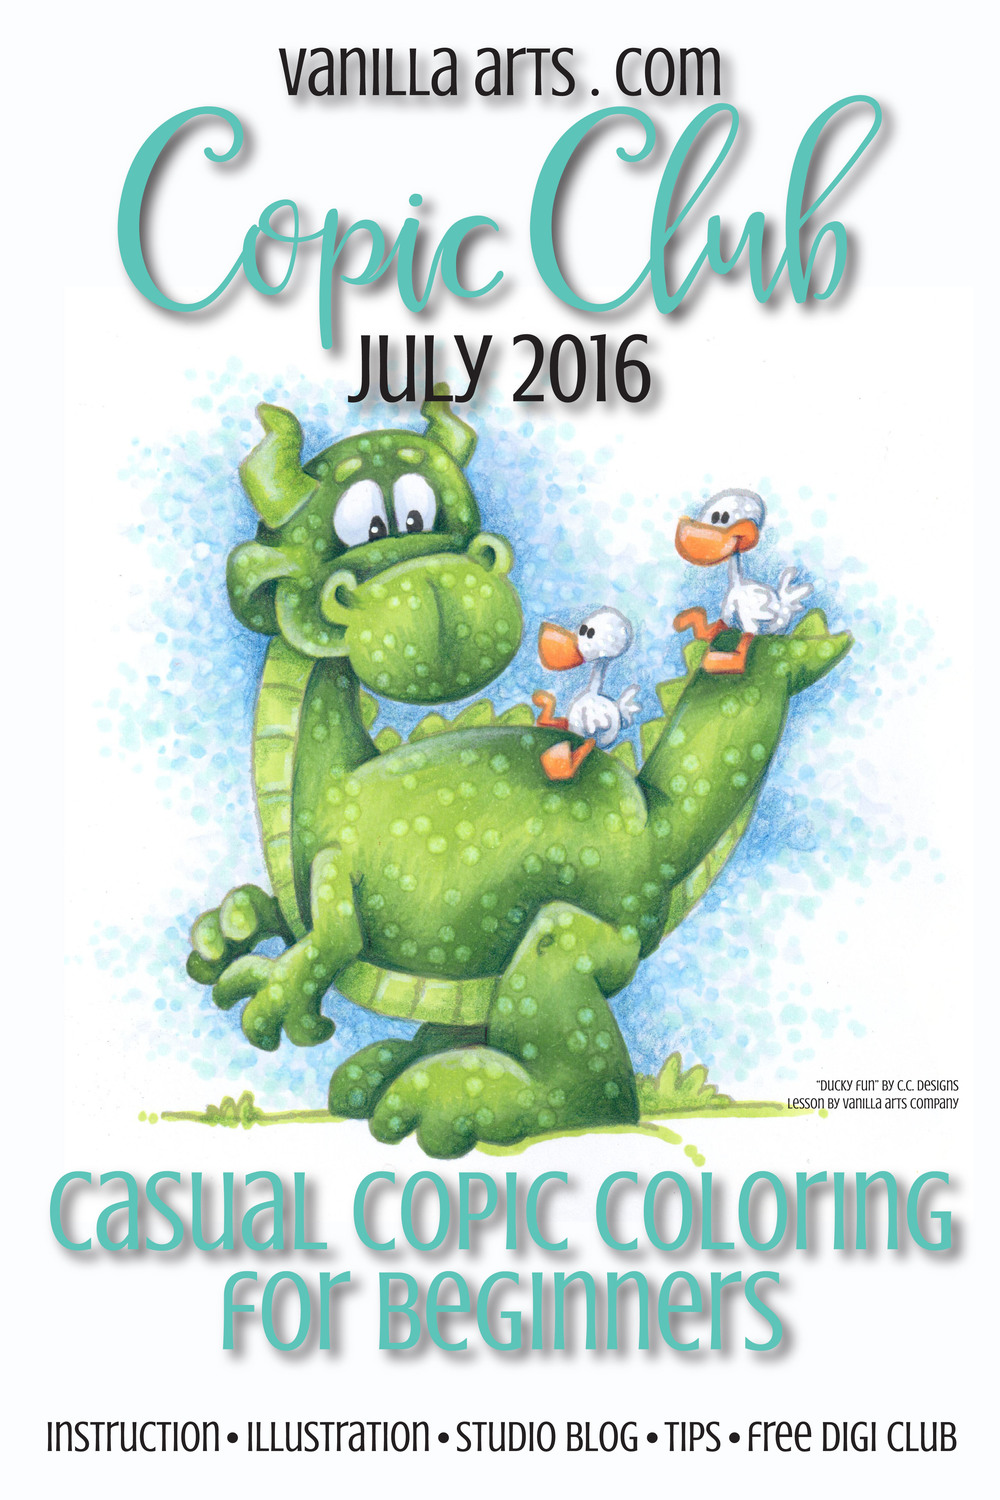 Copic Club for July, learn to use Colorless Blender. Ducky Fun by CC Designs | VanillaArts.com